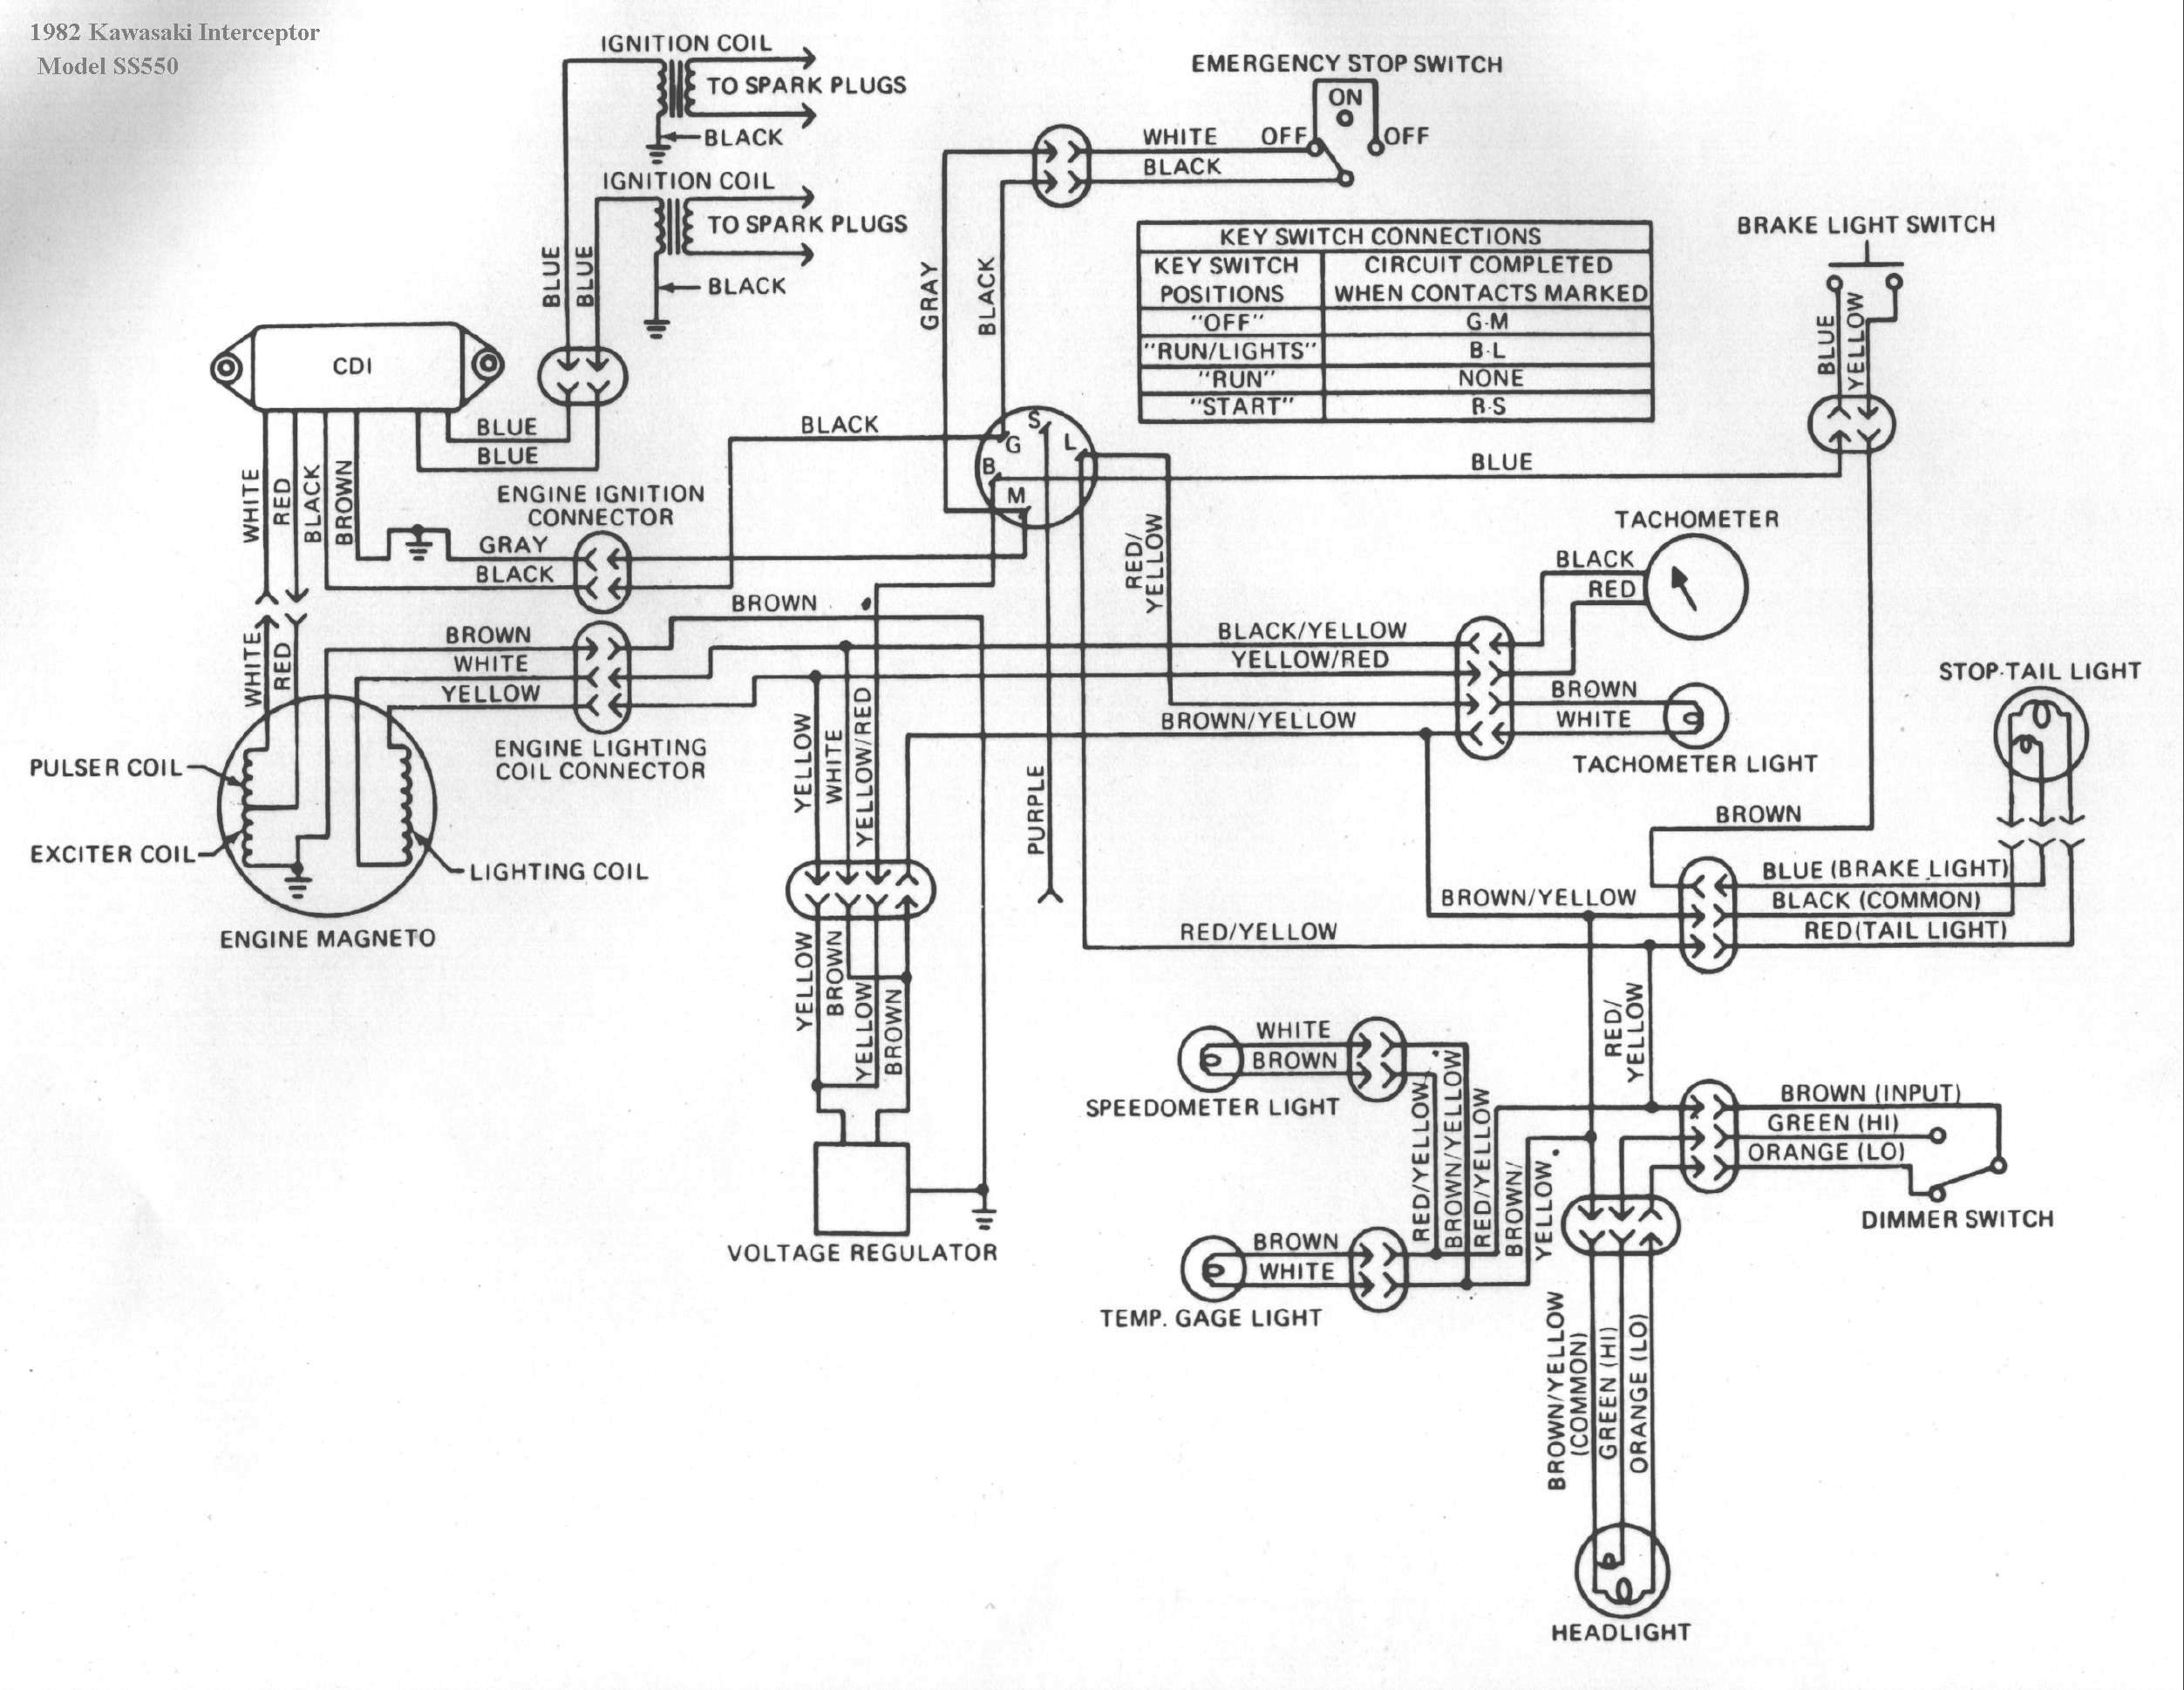 Kawasaki Bayou 300 Wiring Diagram New In 2020 Diagram Jeep Engineering